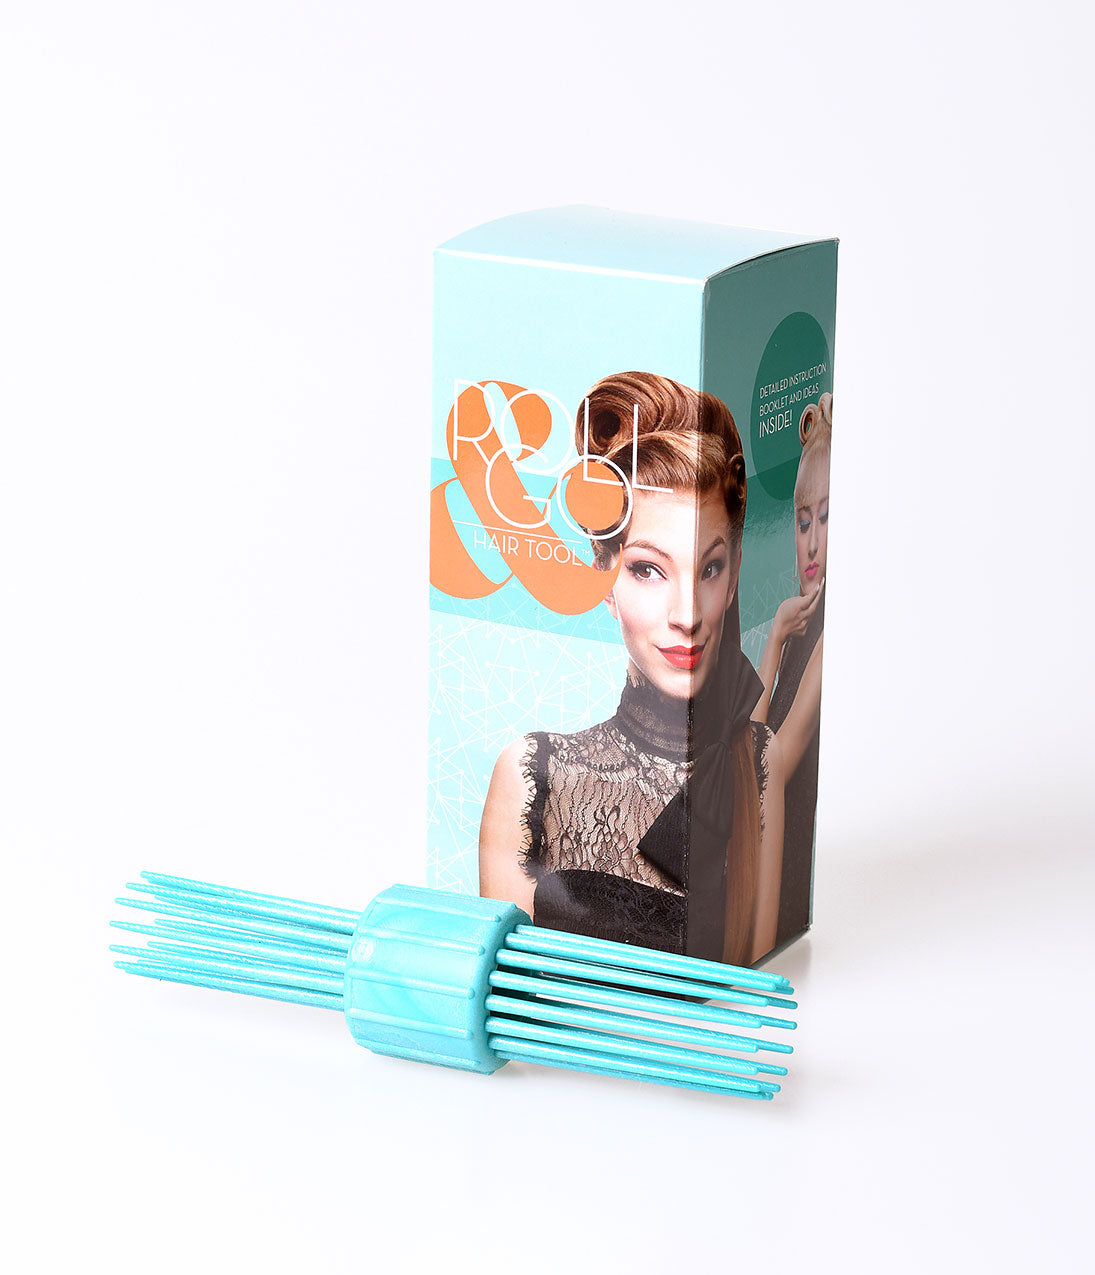 1940s Hair Snoods- Buy, Knit, Crochet or Sew a Snood Vintage Style Mint Roll  Go Hair Tool $32.00 AT vintagedancer.com